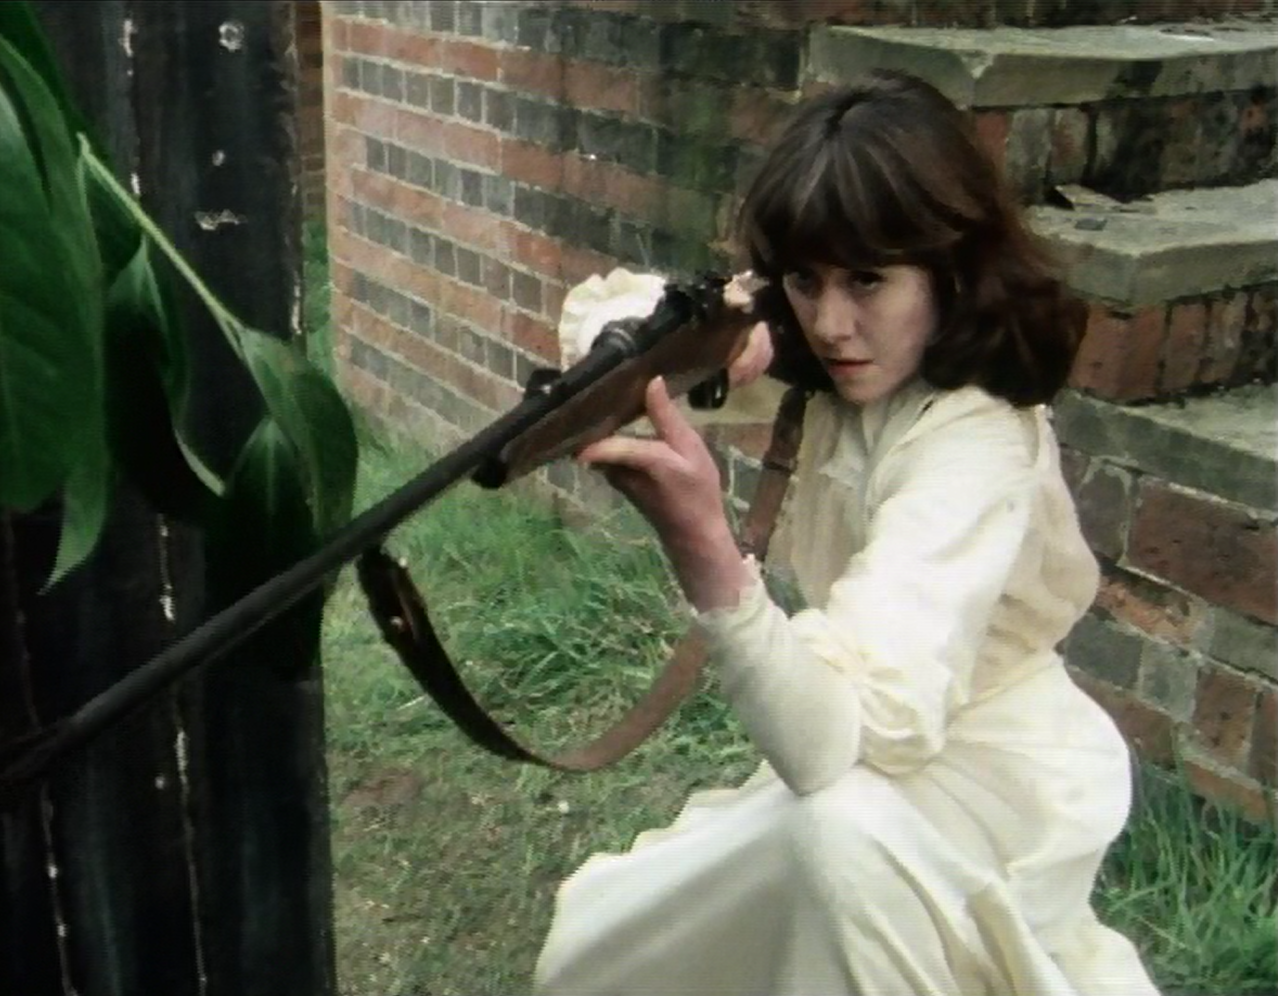 Sarah Jane, good with firearms